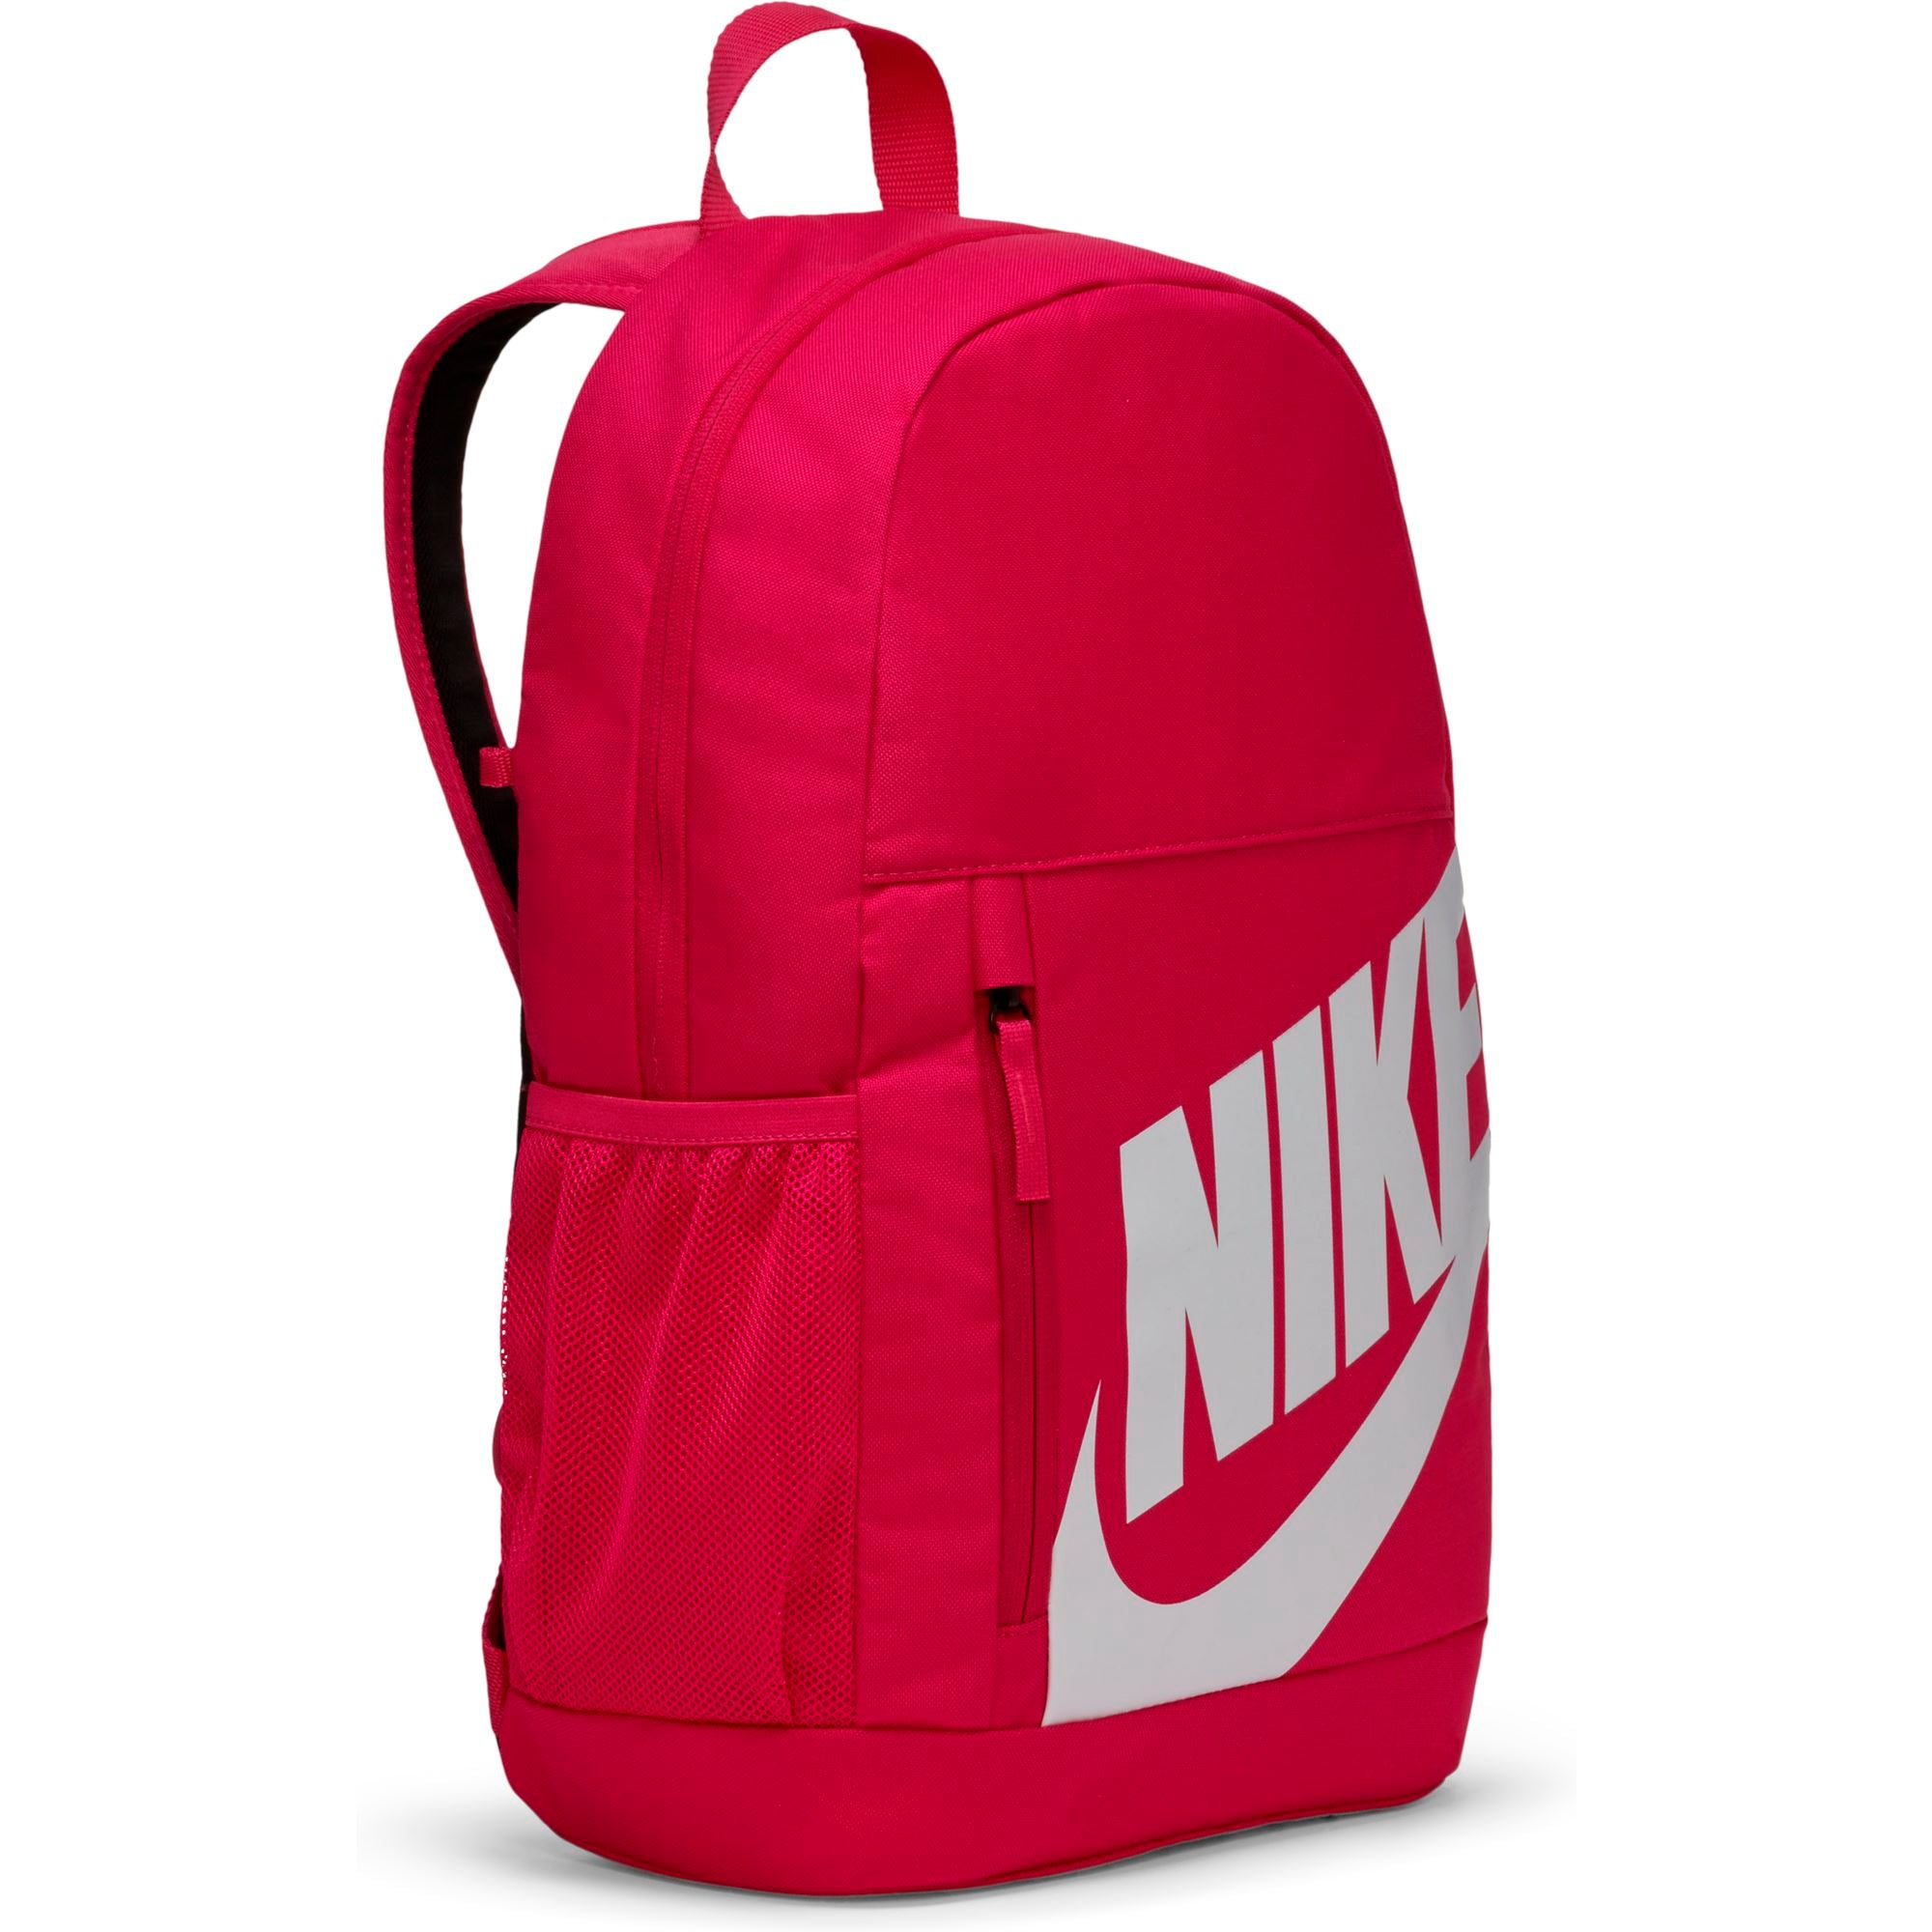 Nike Kids Elemental Backpack - Fireberry/White SP-Accessories-Bags Nike